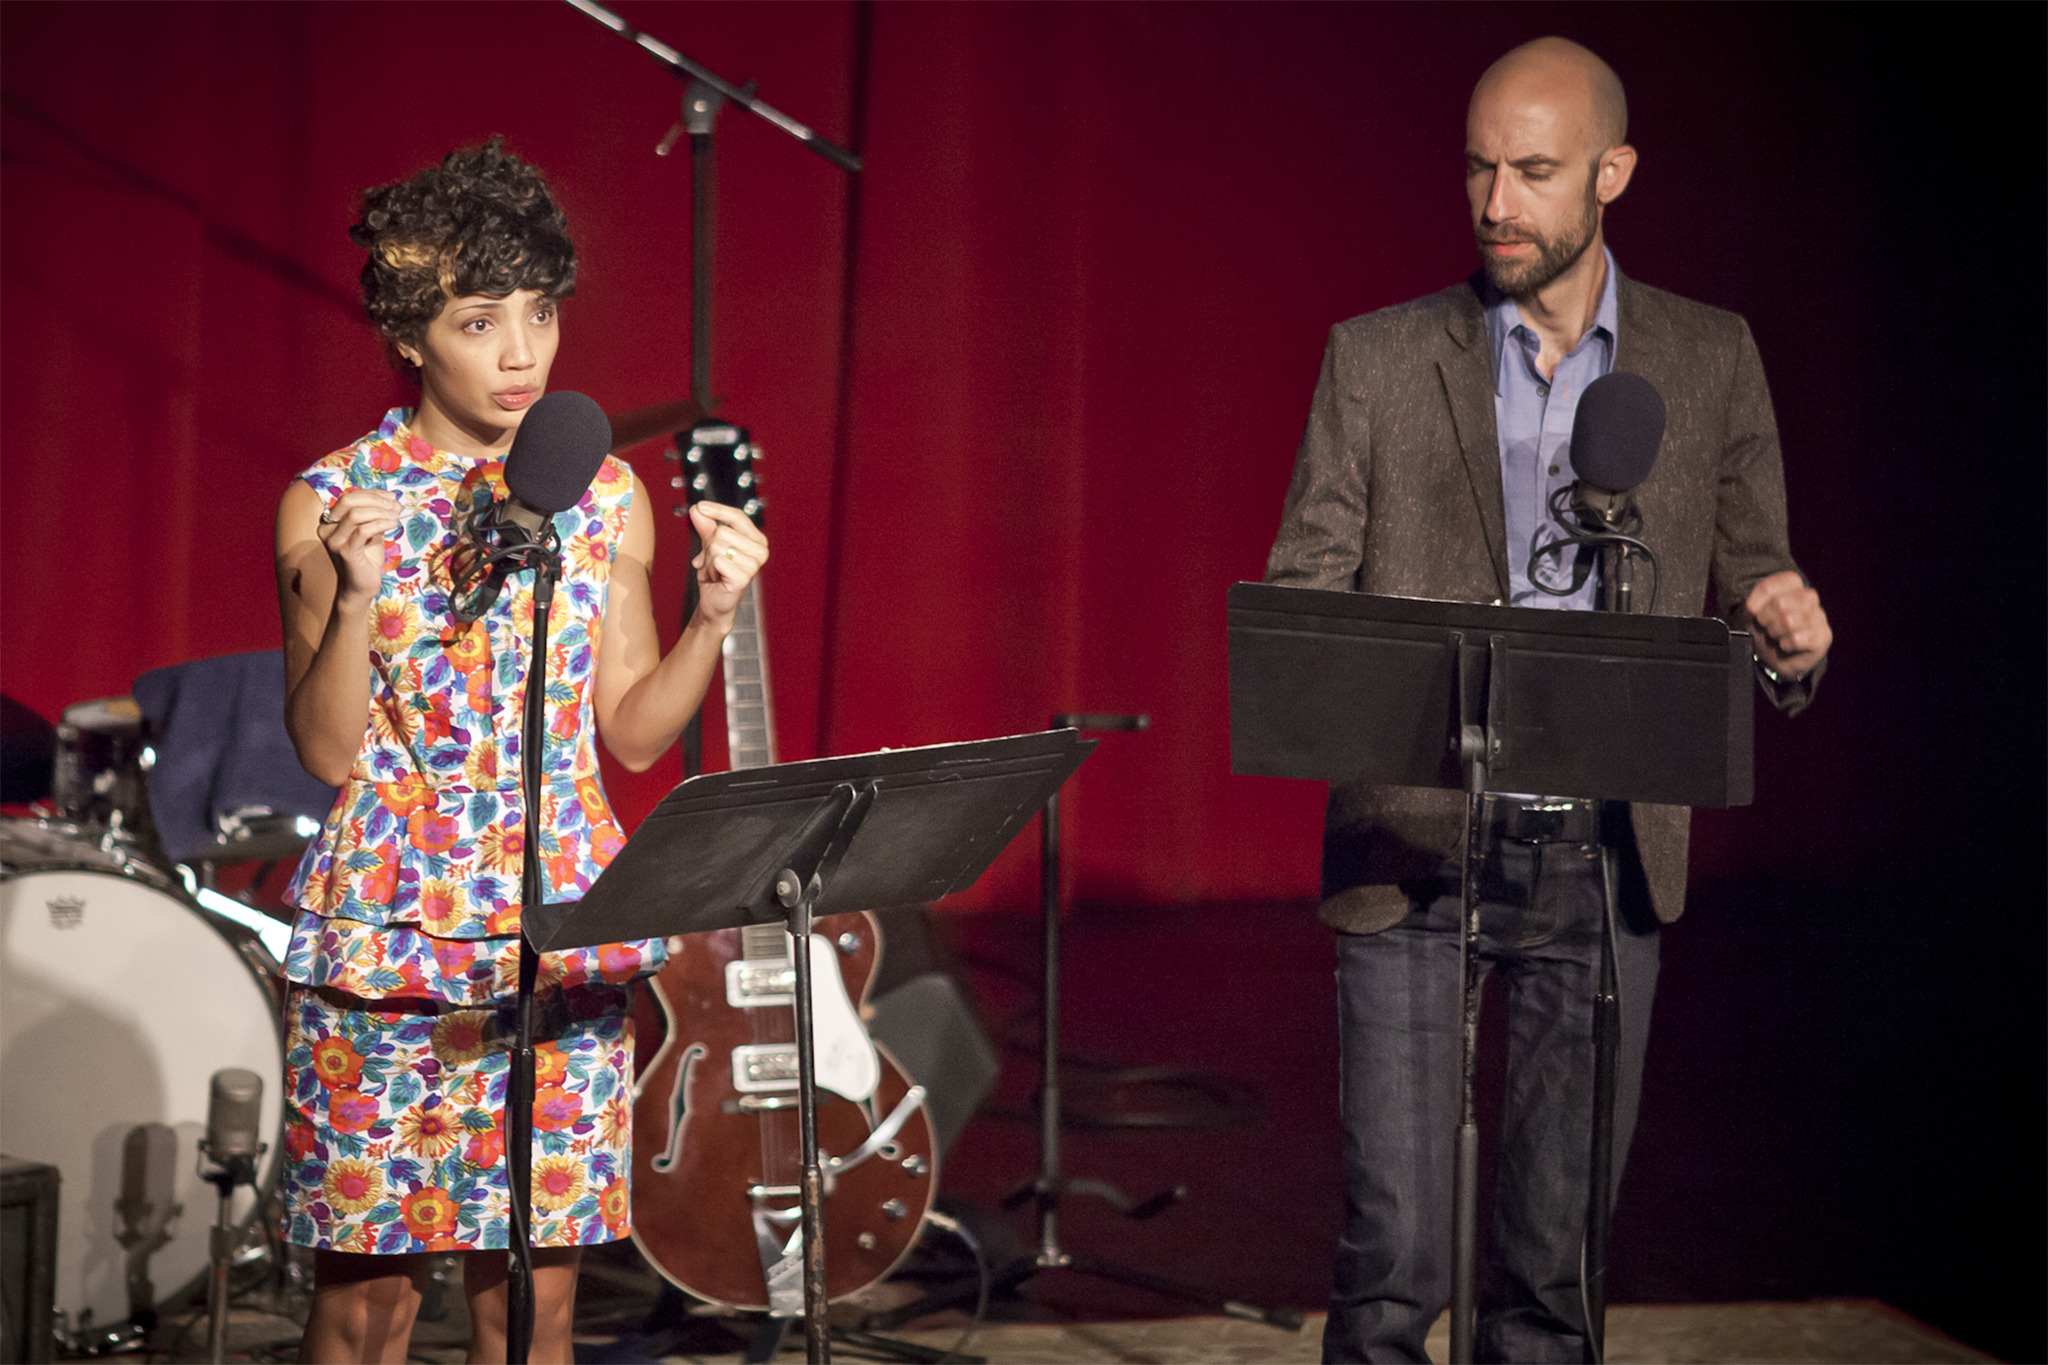 Walk on the weird side with cultish podcast Welcome to Night Vale